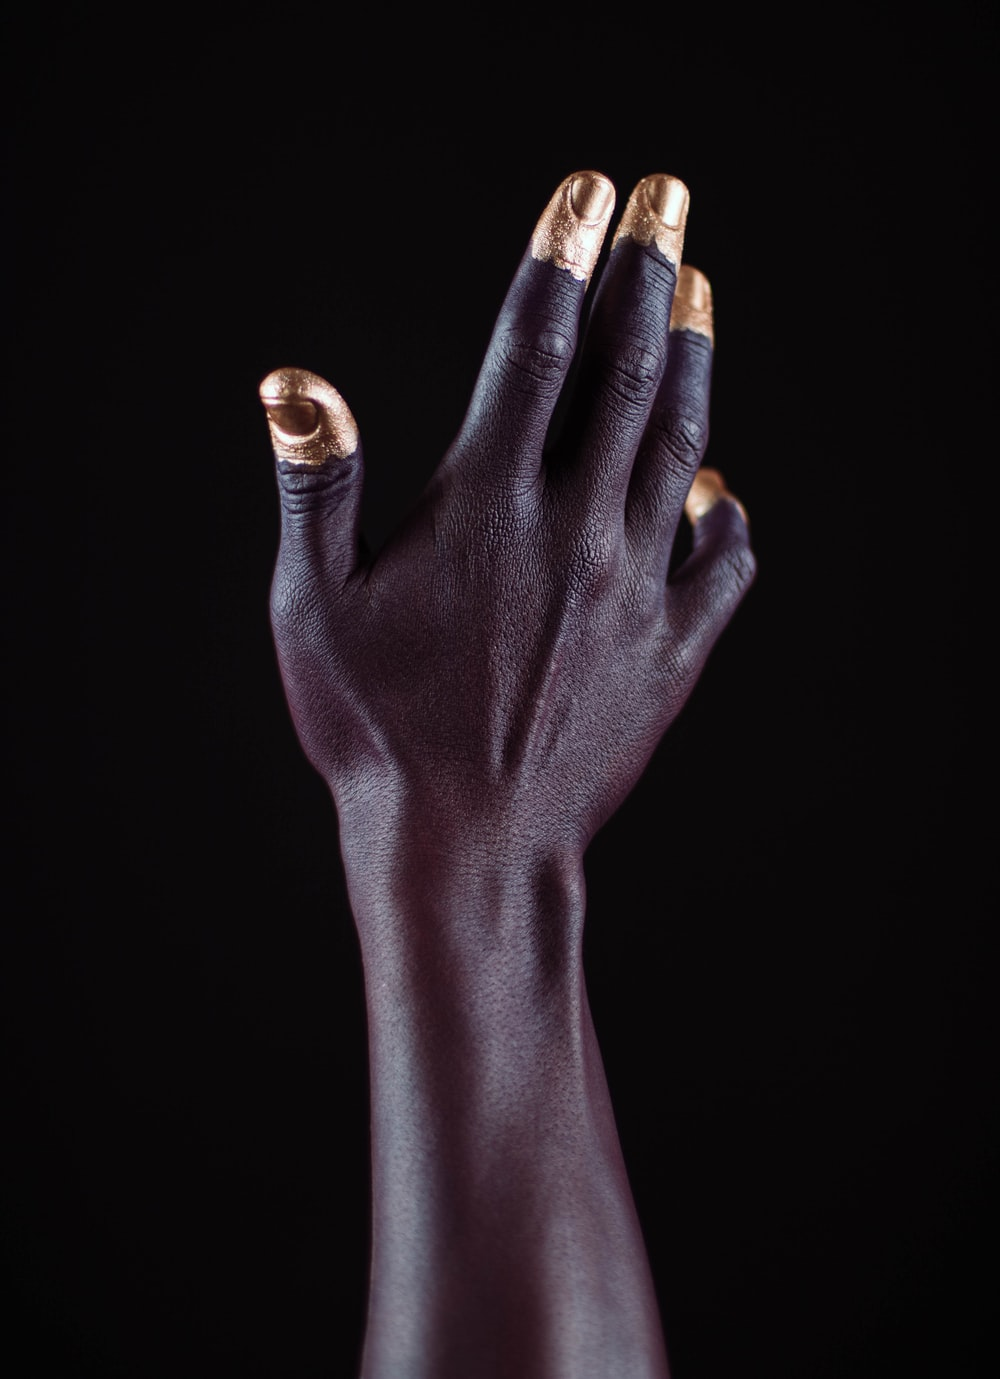 gold-dipped person's fingers